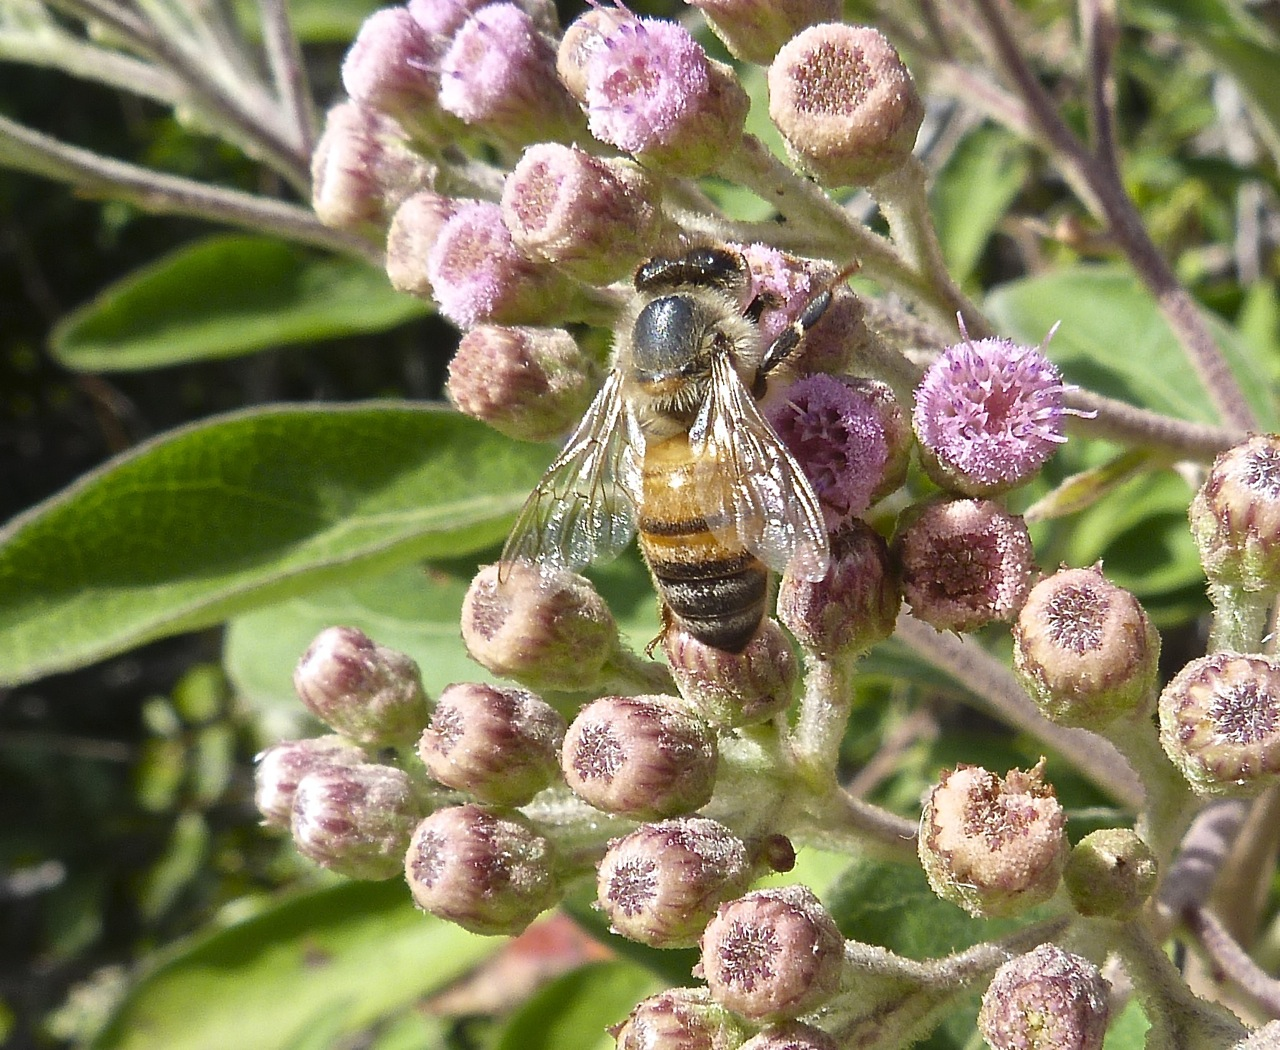 Abaco bees 2